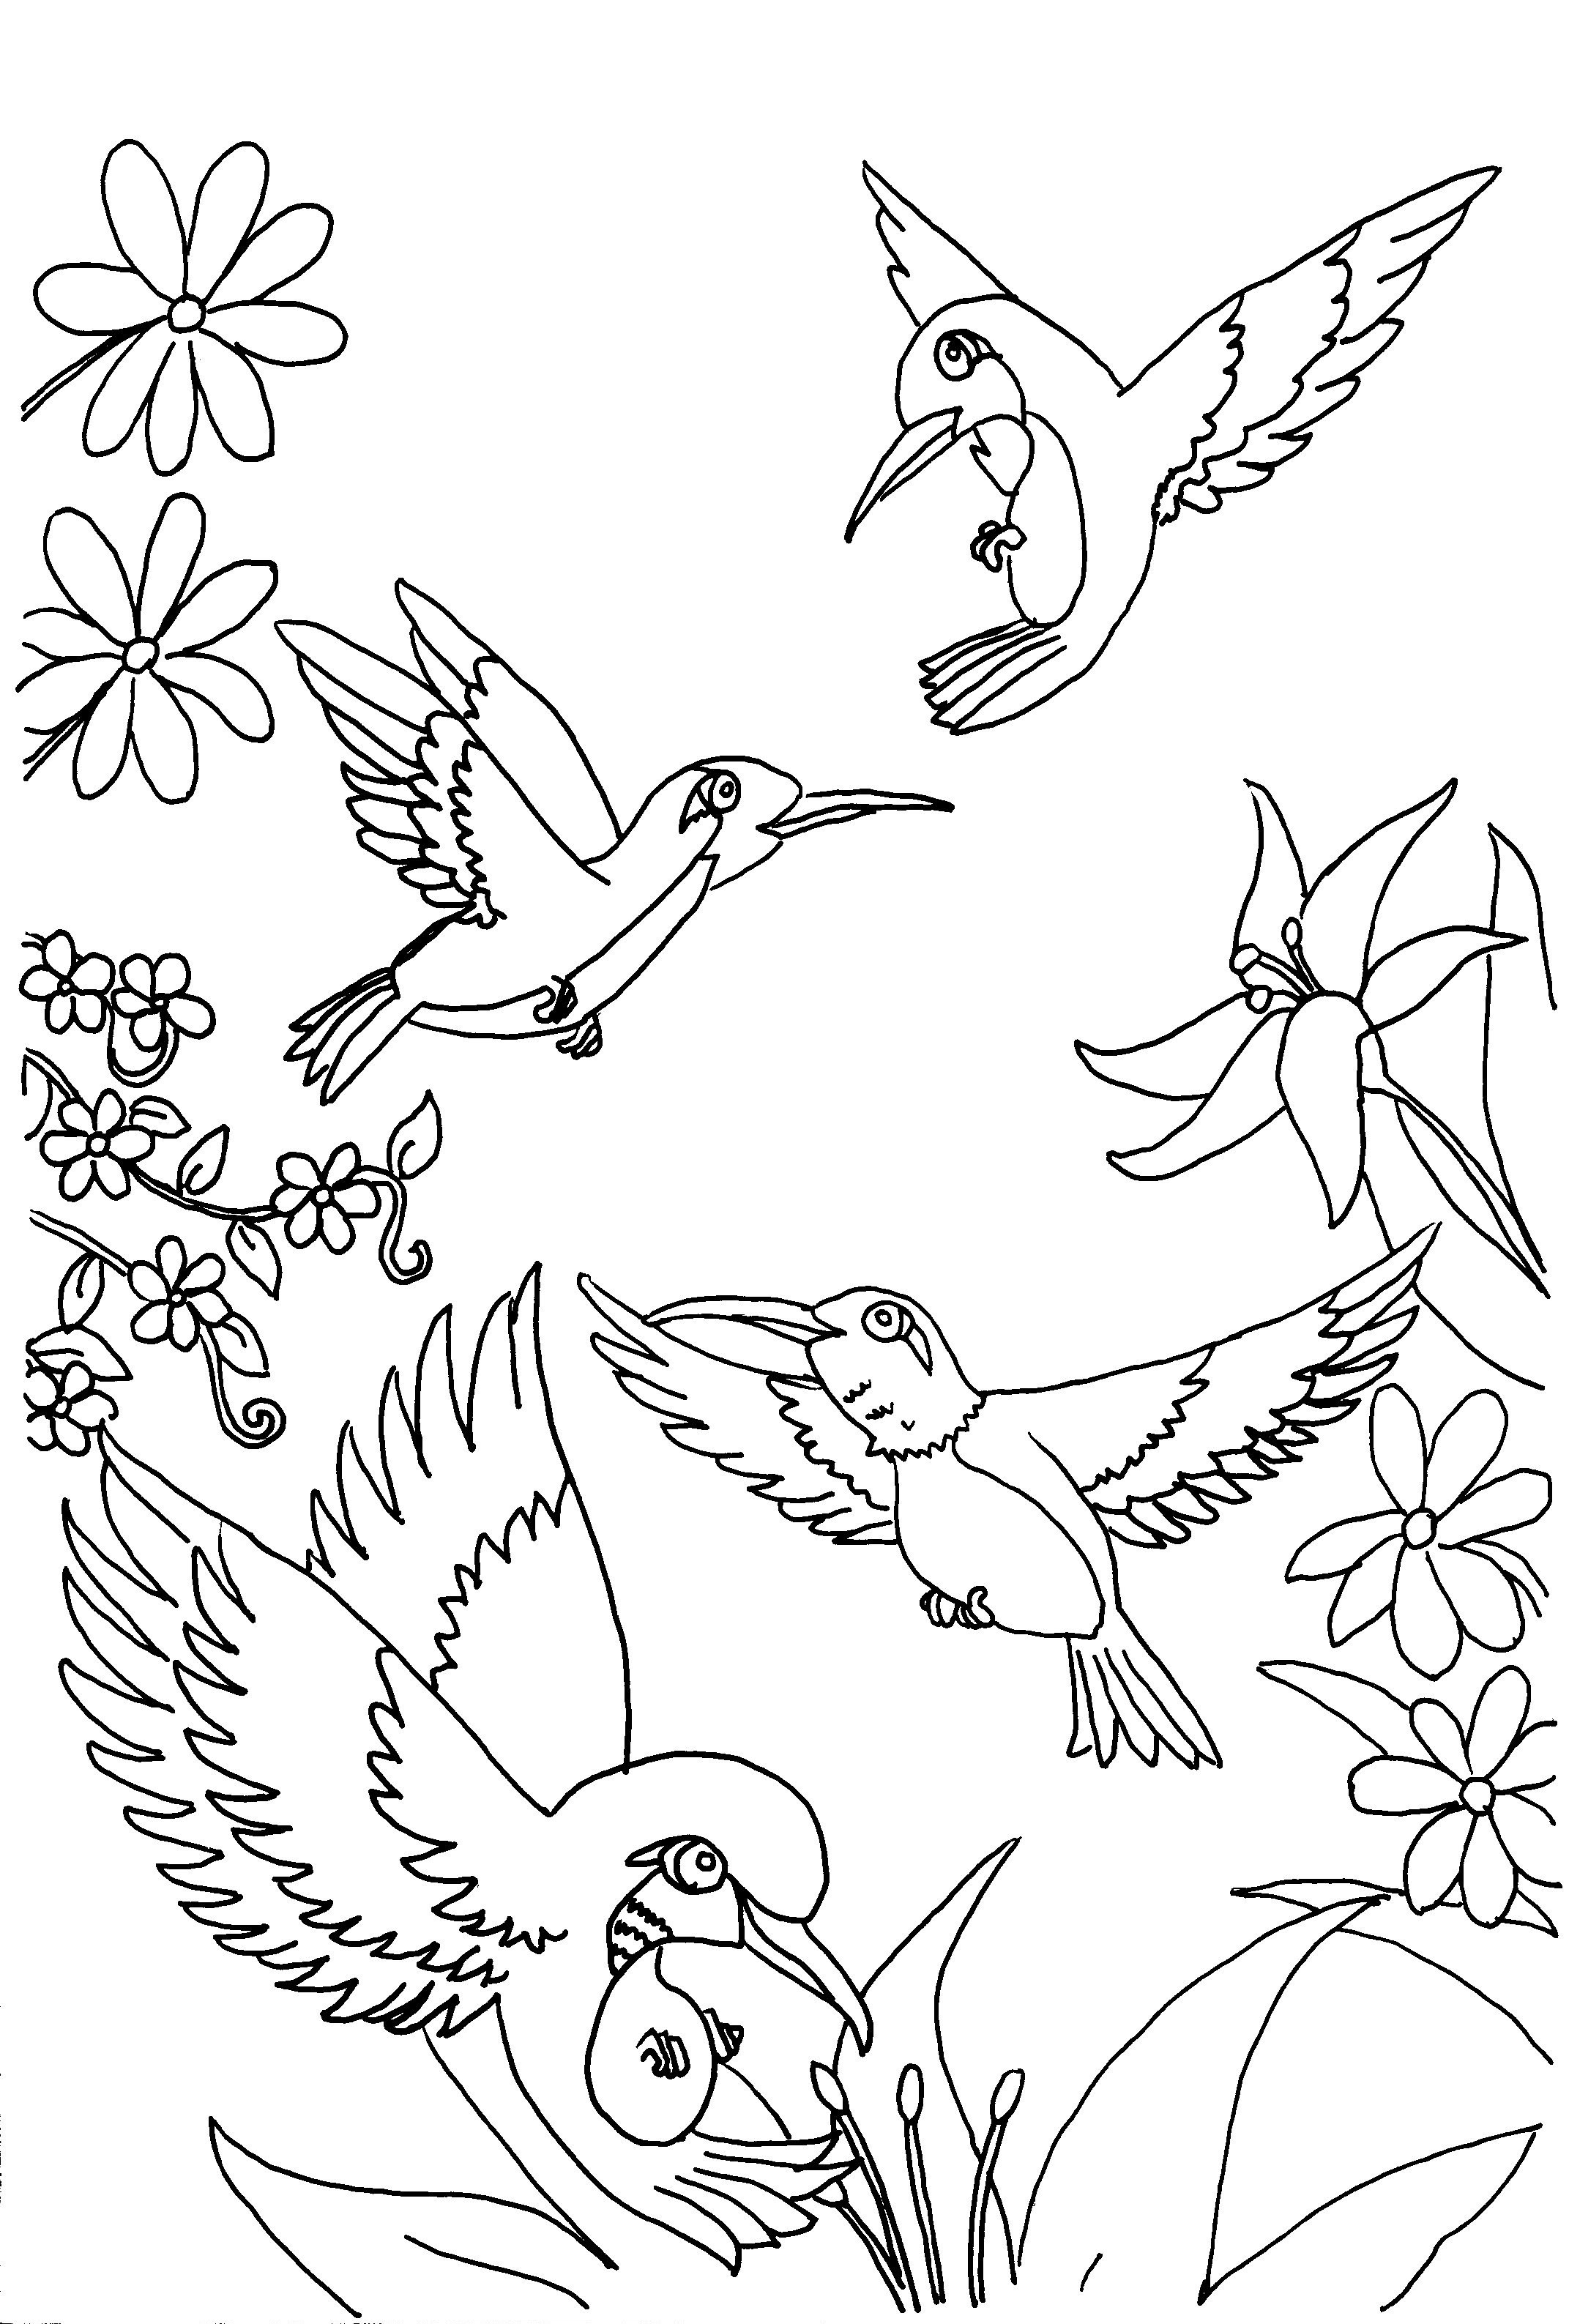 free printable hummingbird coloring pages hummingbird coloring pages printable at getcoloringscom coloring hummingbird free printable pages